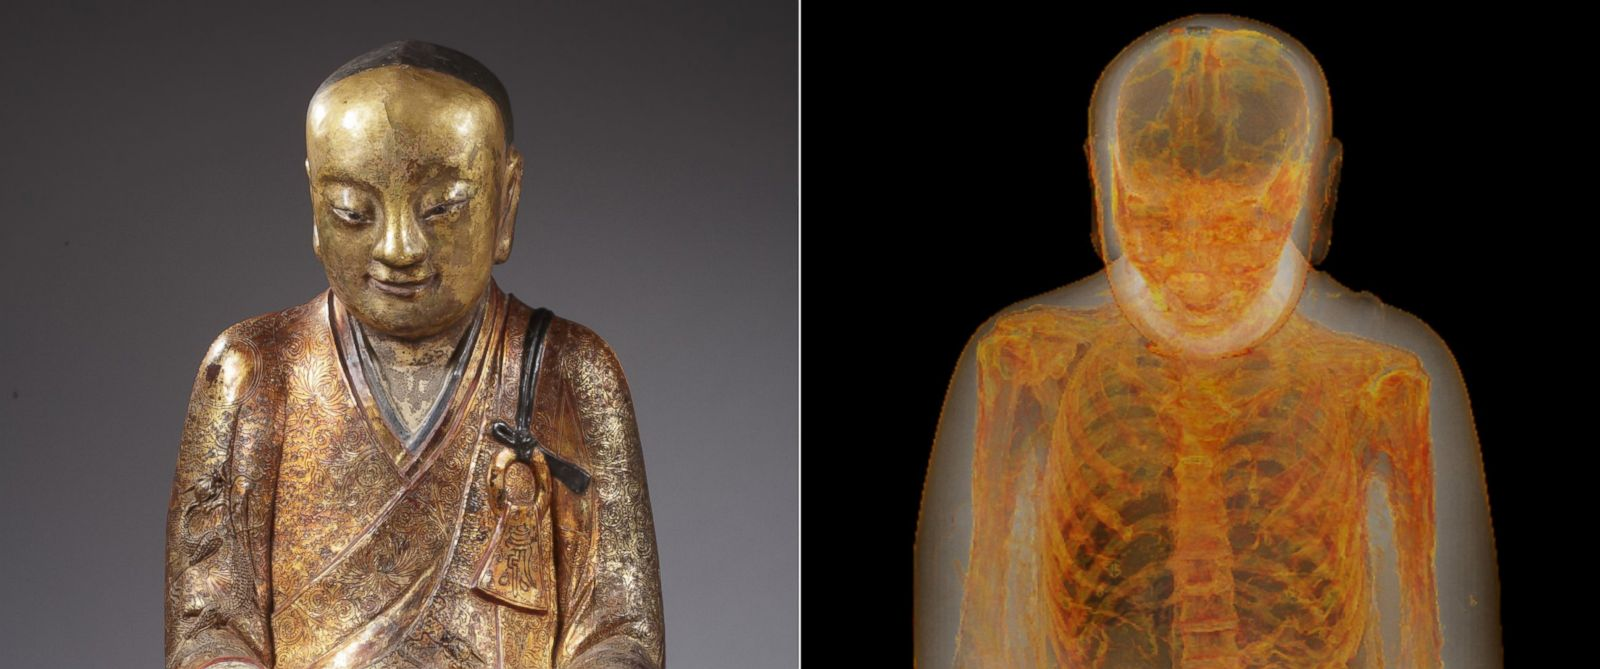 PHOTO: A mummy was discovered inside a statue of Buddha.